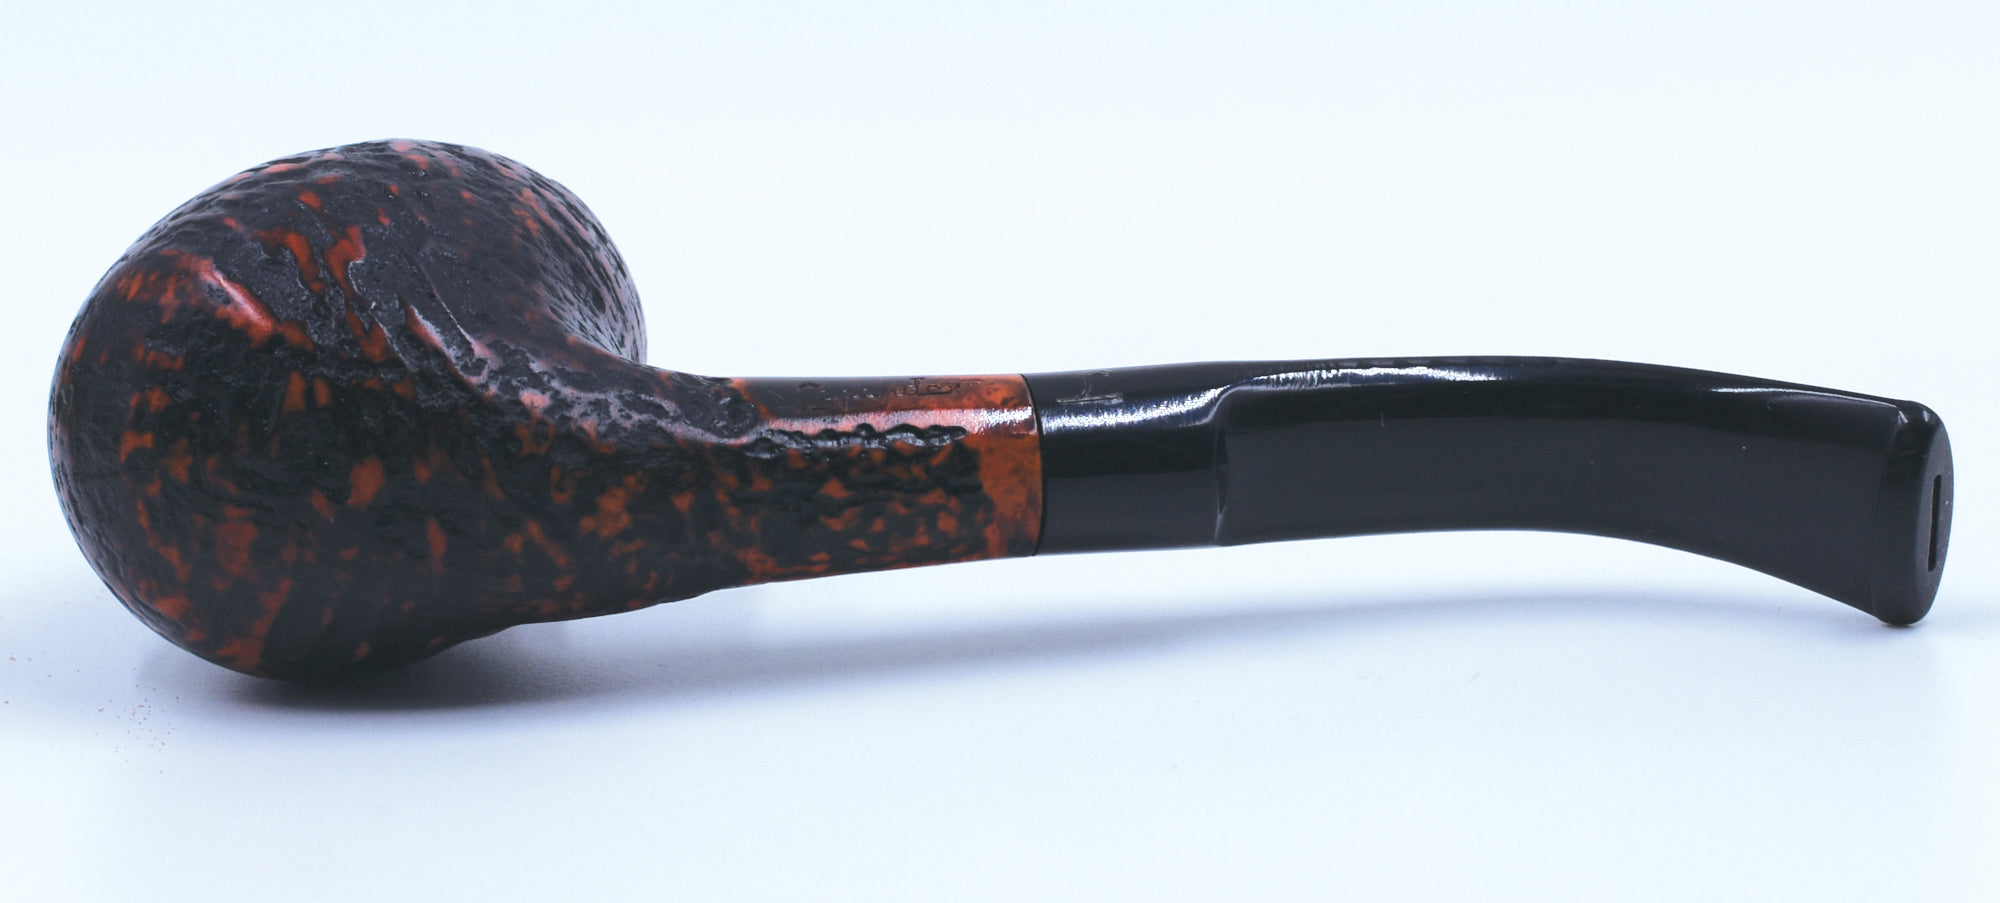 LEGENDEX® PUCCINI* 6 MM Filtered Briar Smoking Pipe Made In Italy 01-08-214